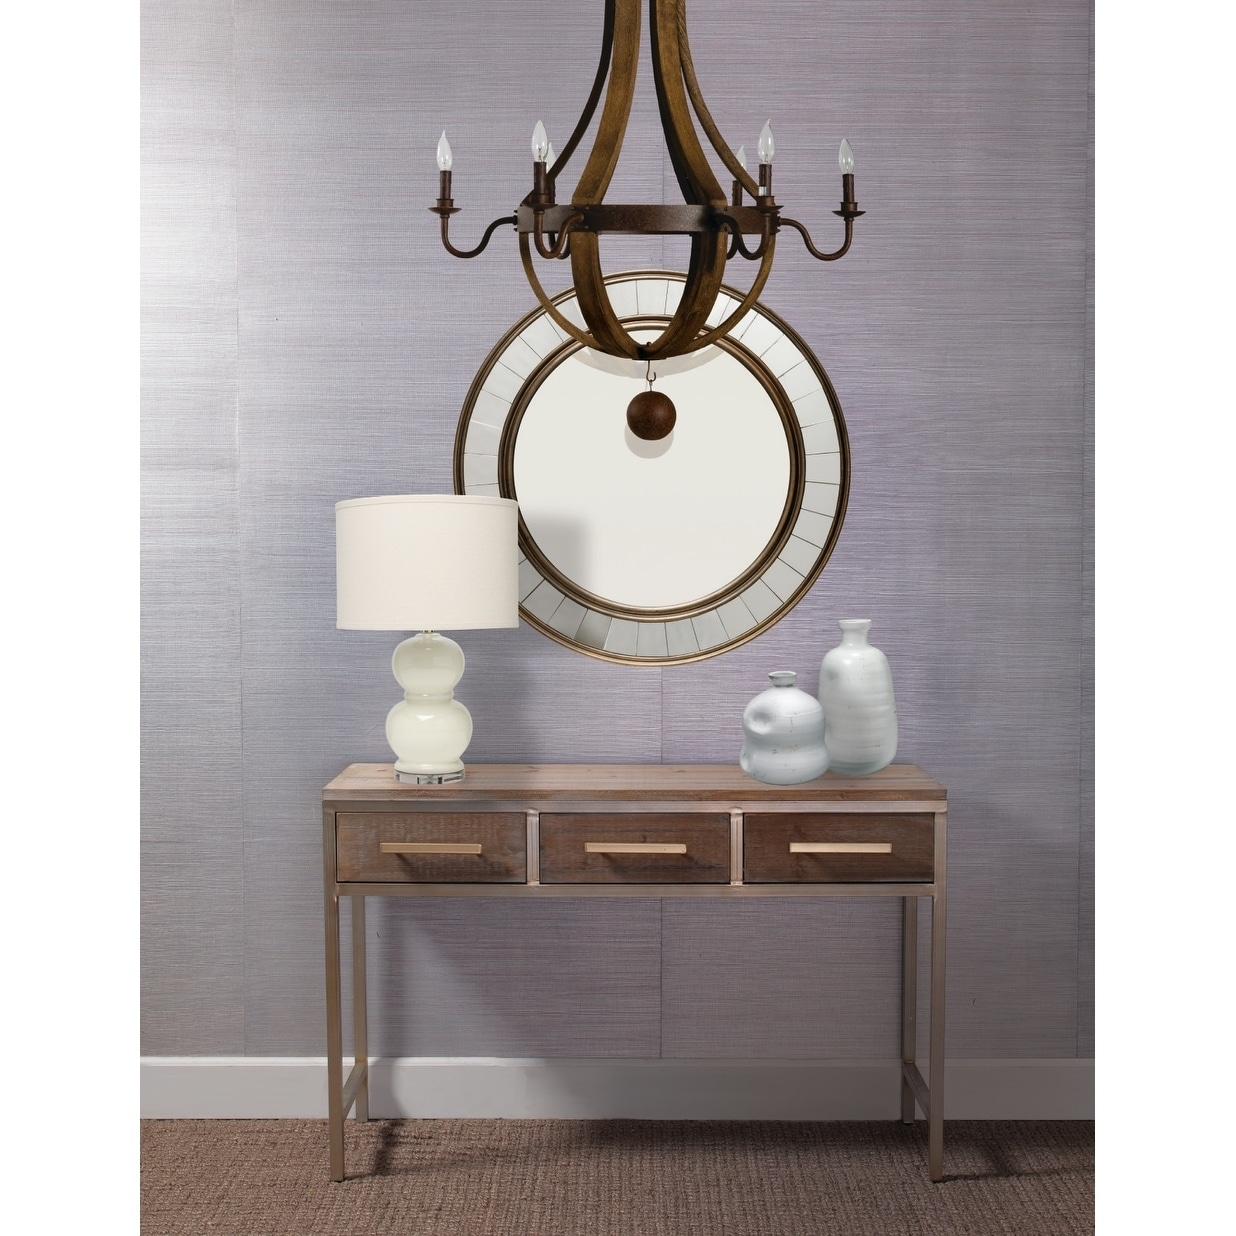 Shop Alden Decor Round Wood Mirror With Trim Antique Bronze On Sale Ships To Canada Overstock 18540885